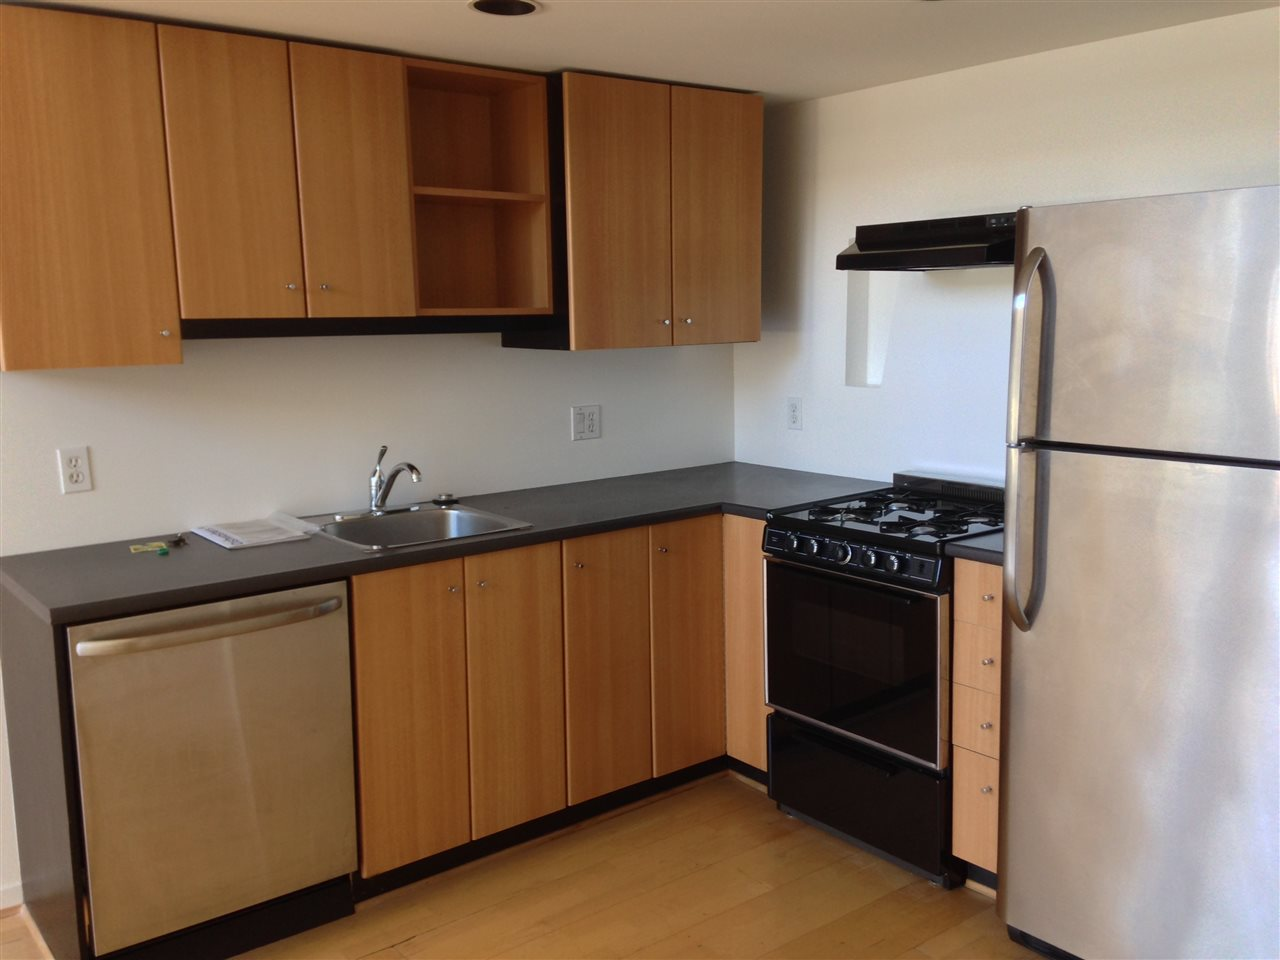 Photo 8: 803 933 SEYMOUR STREET in Vancouver: Downtown VW Condo for sale (Vancouver West)  : MLS® # R2078140